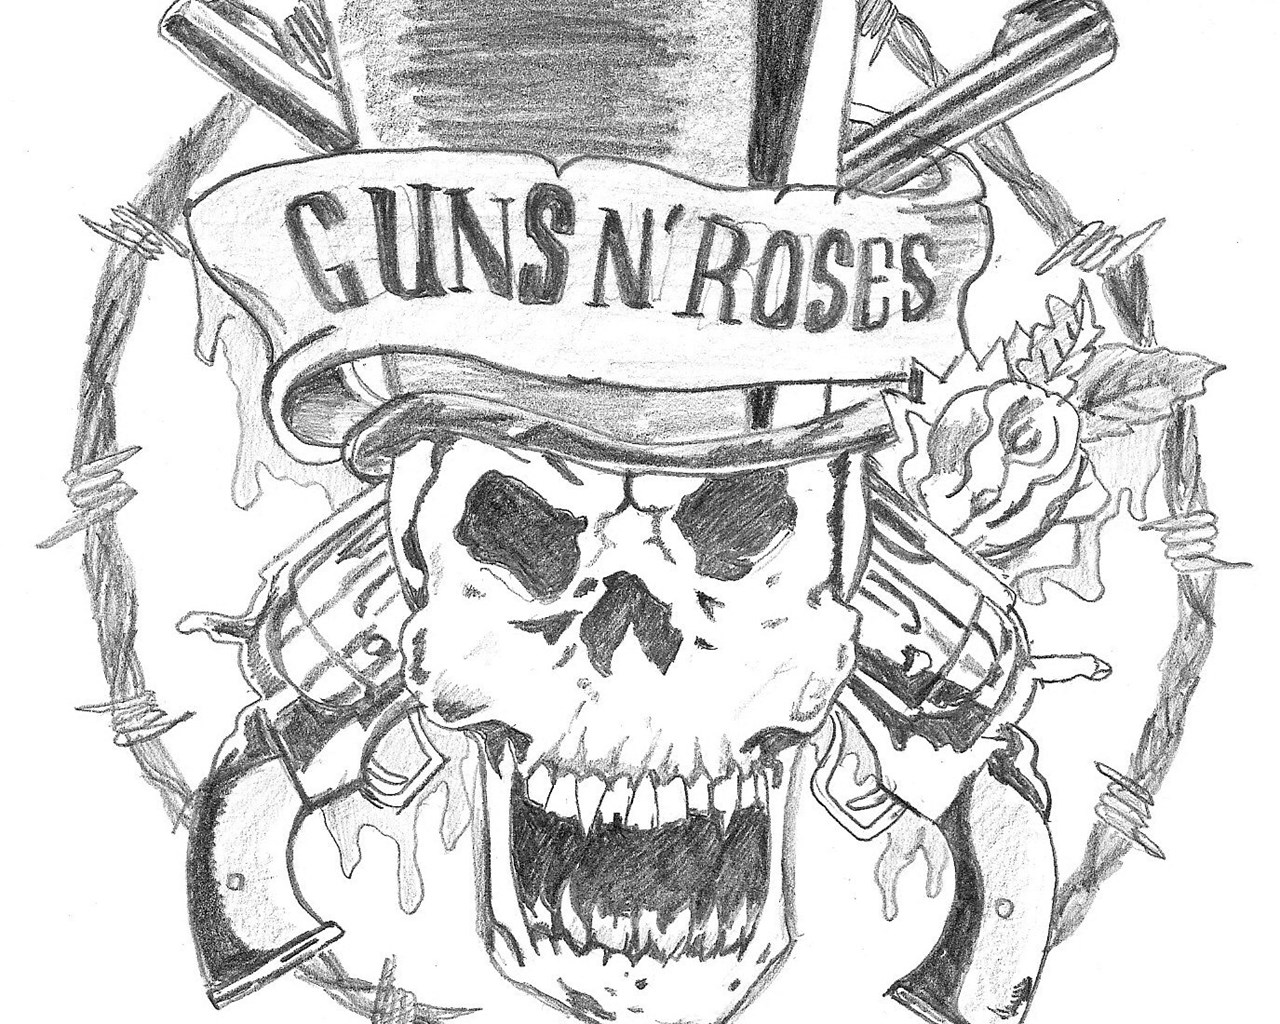 Guns N Roses Wallpaper Logo 171 Desktop Wallpapers